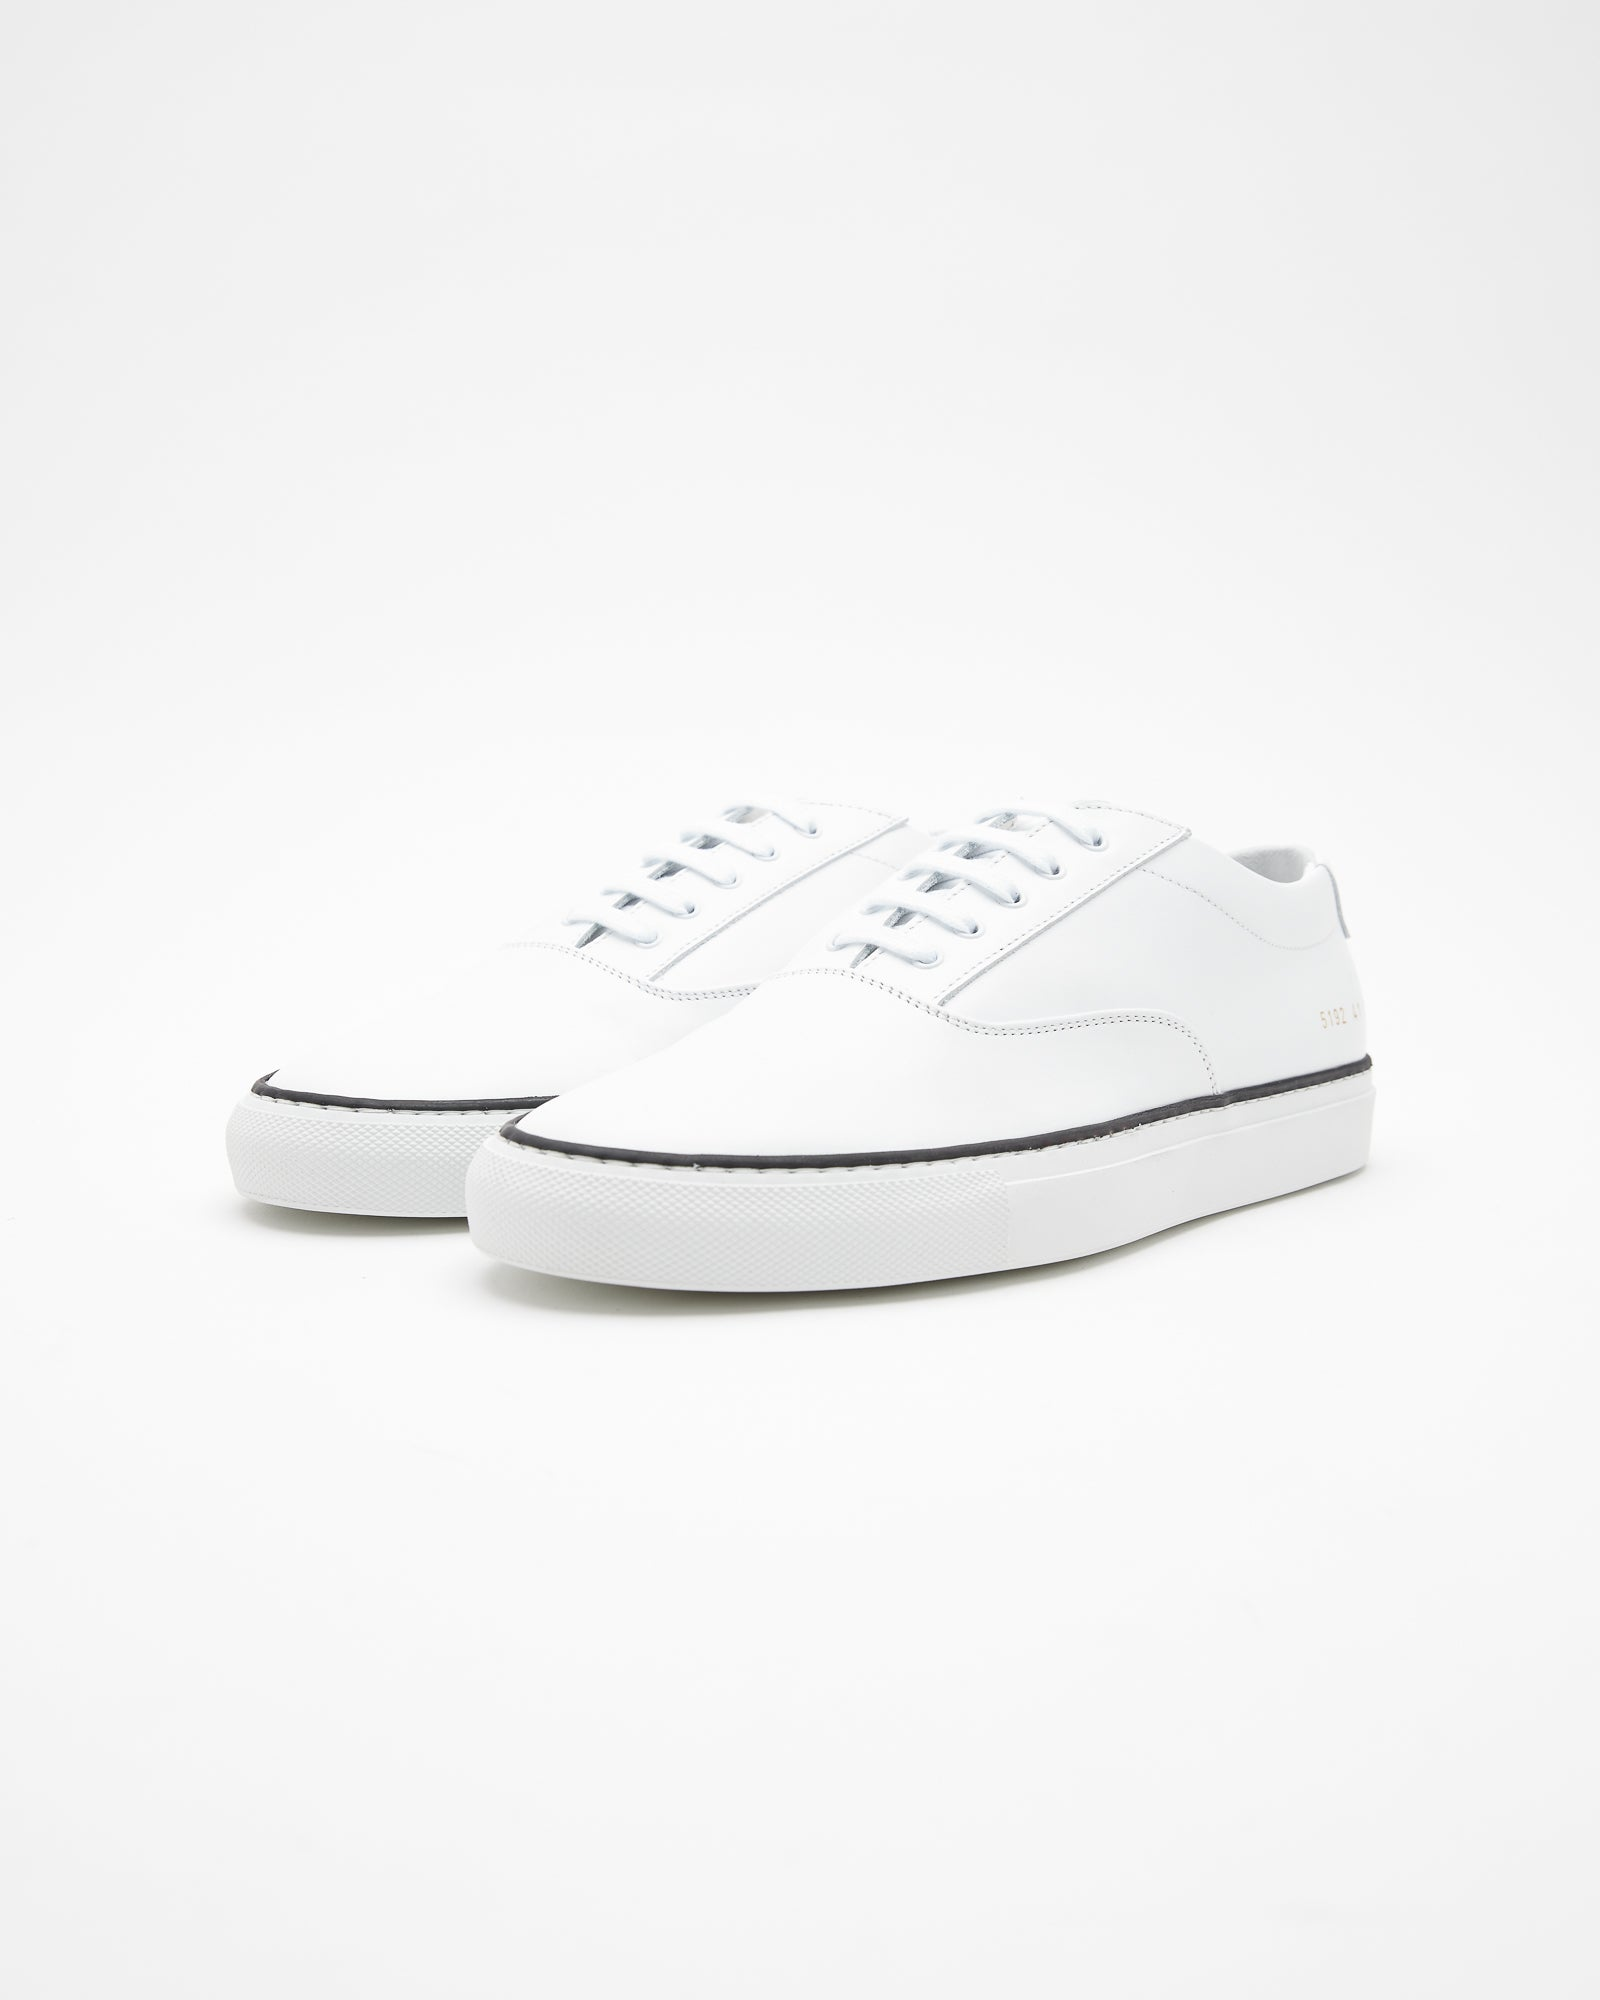 Five Hole Sneakers in Leather White